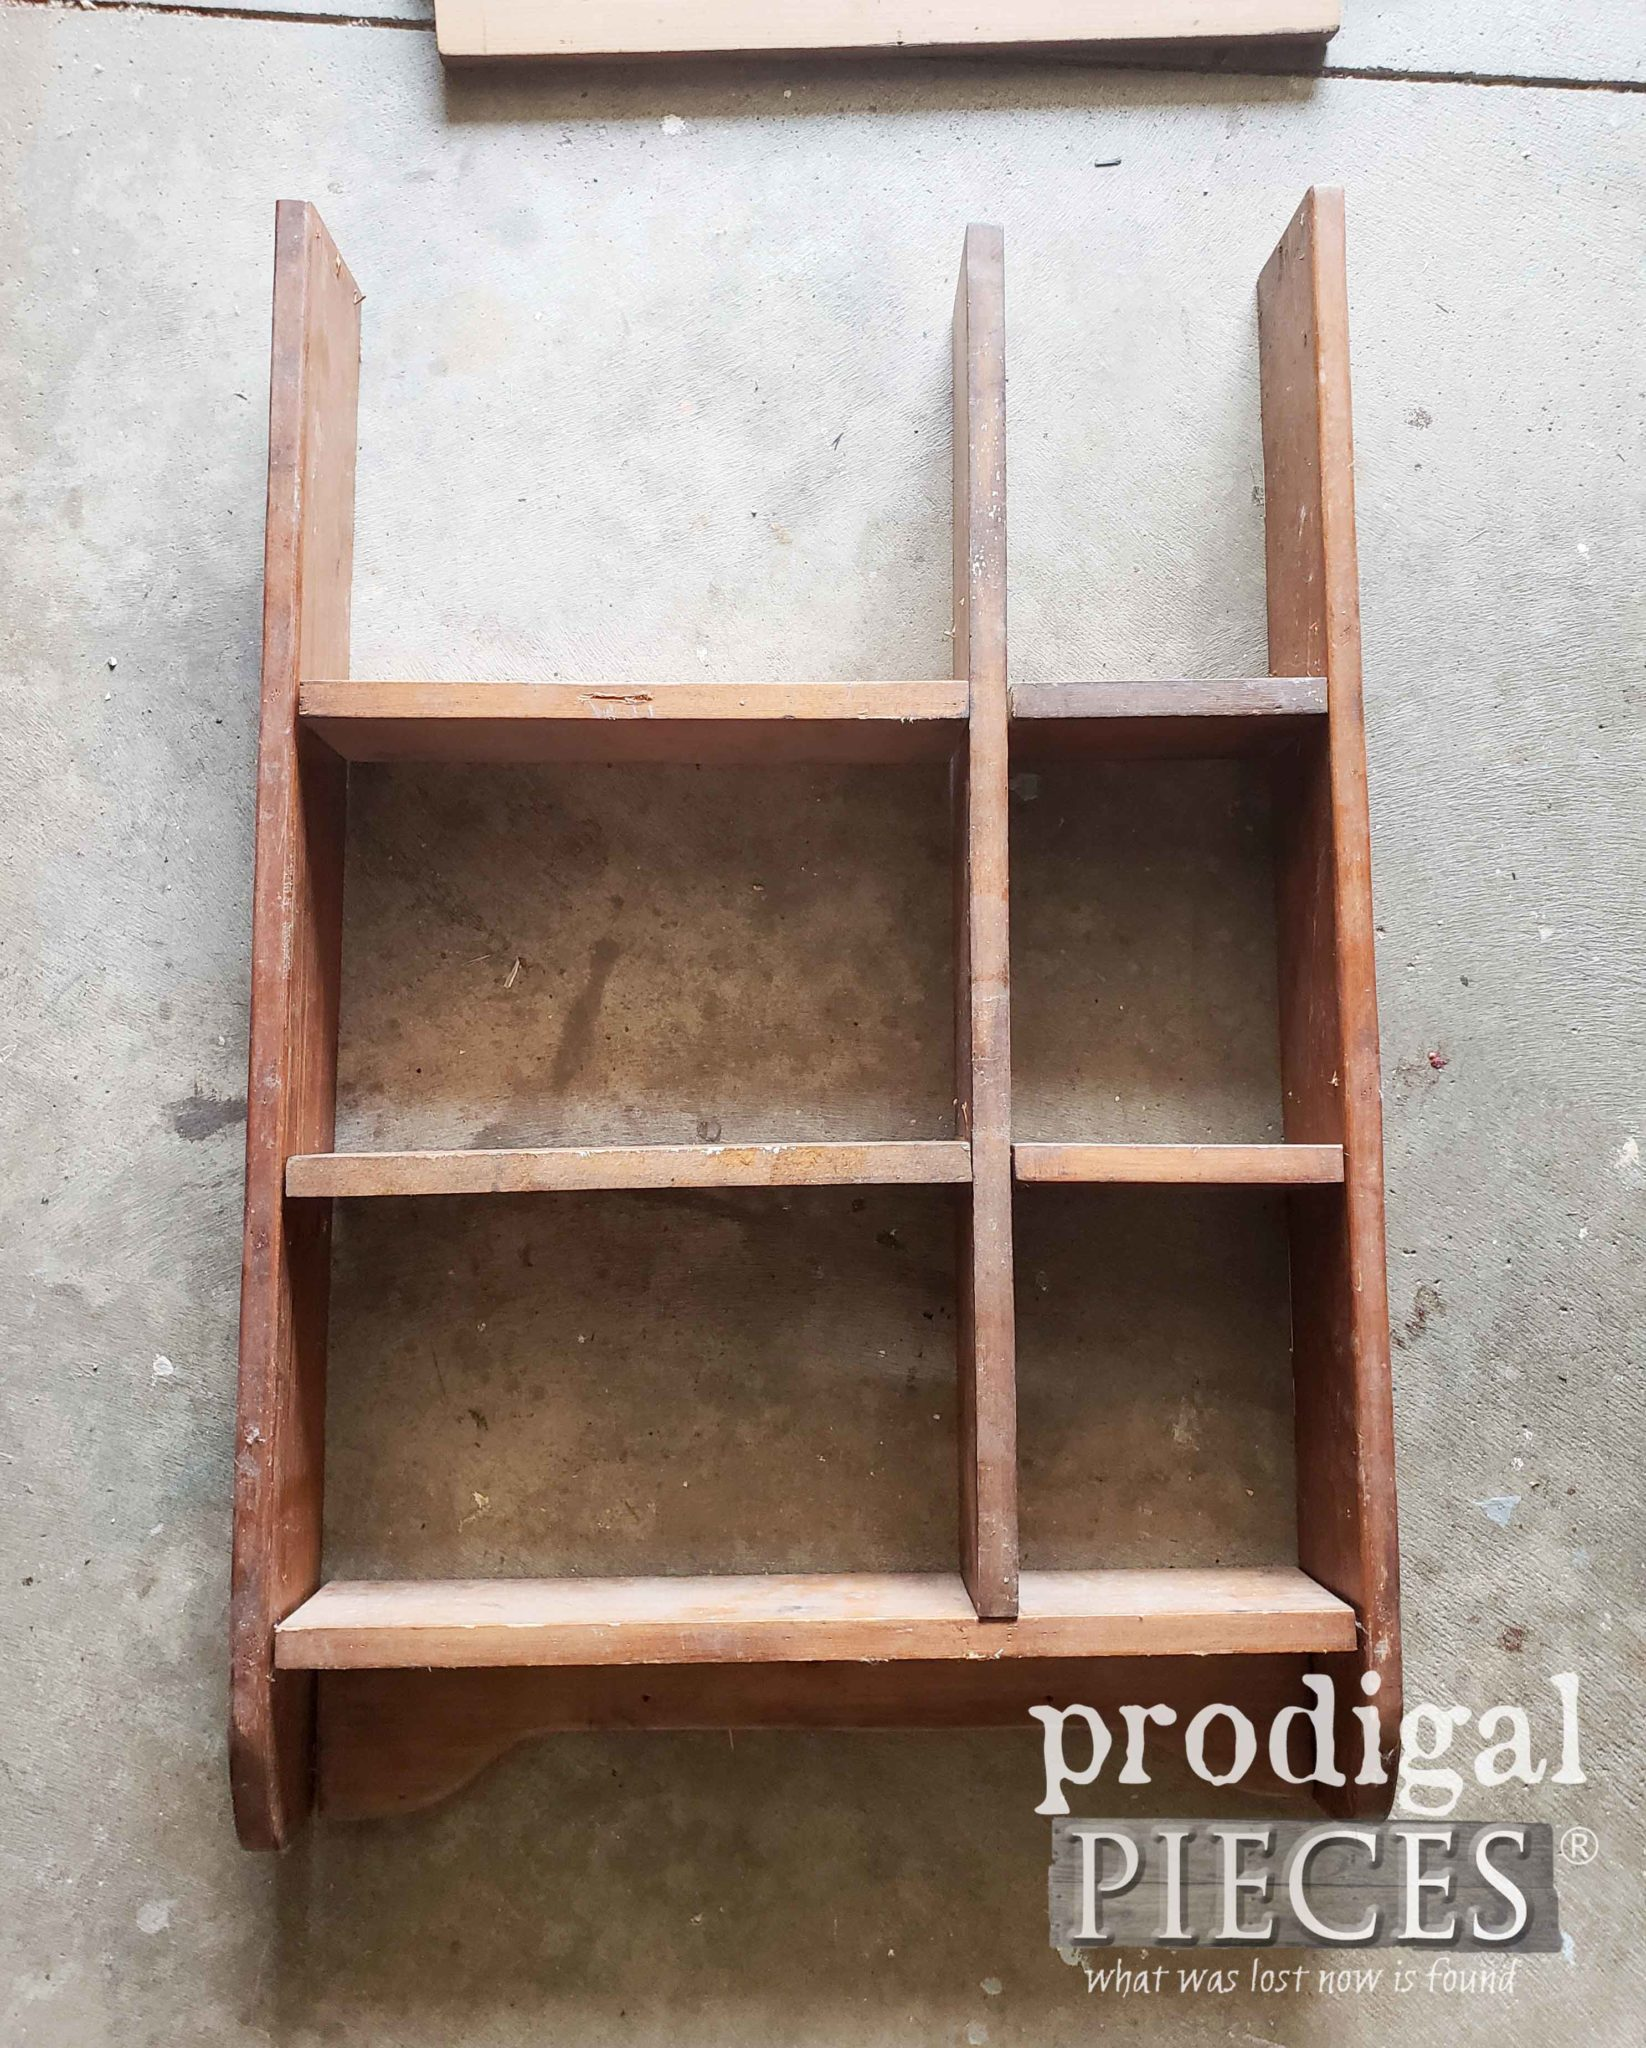 Dry Fit Farmhouse Kitchen Storage Shelf | prodigalpieces.com